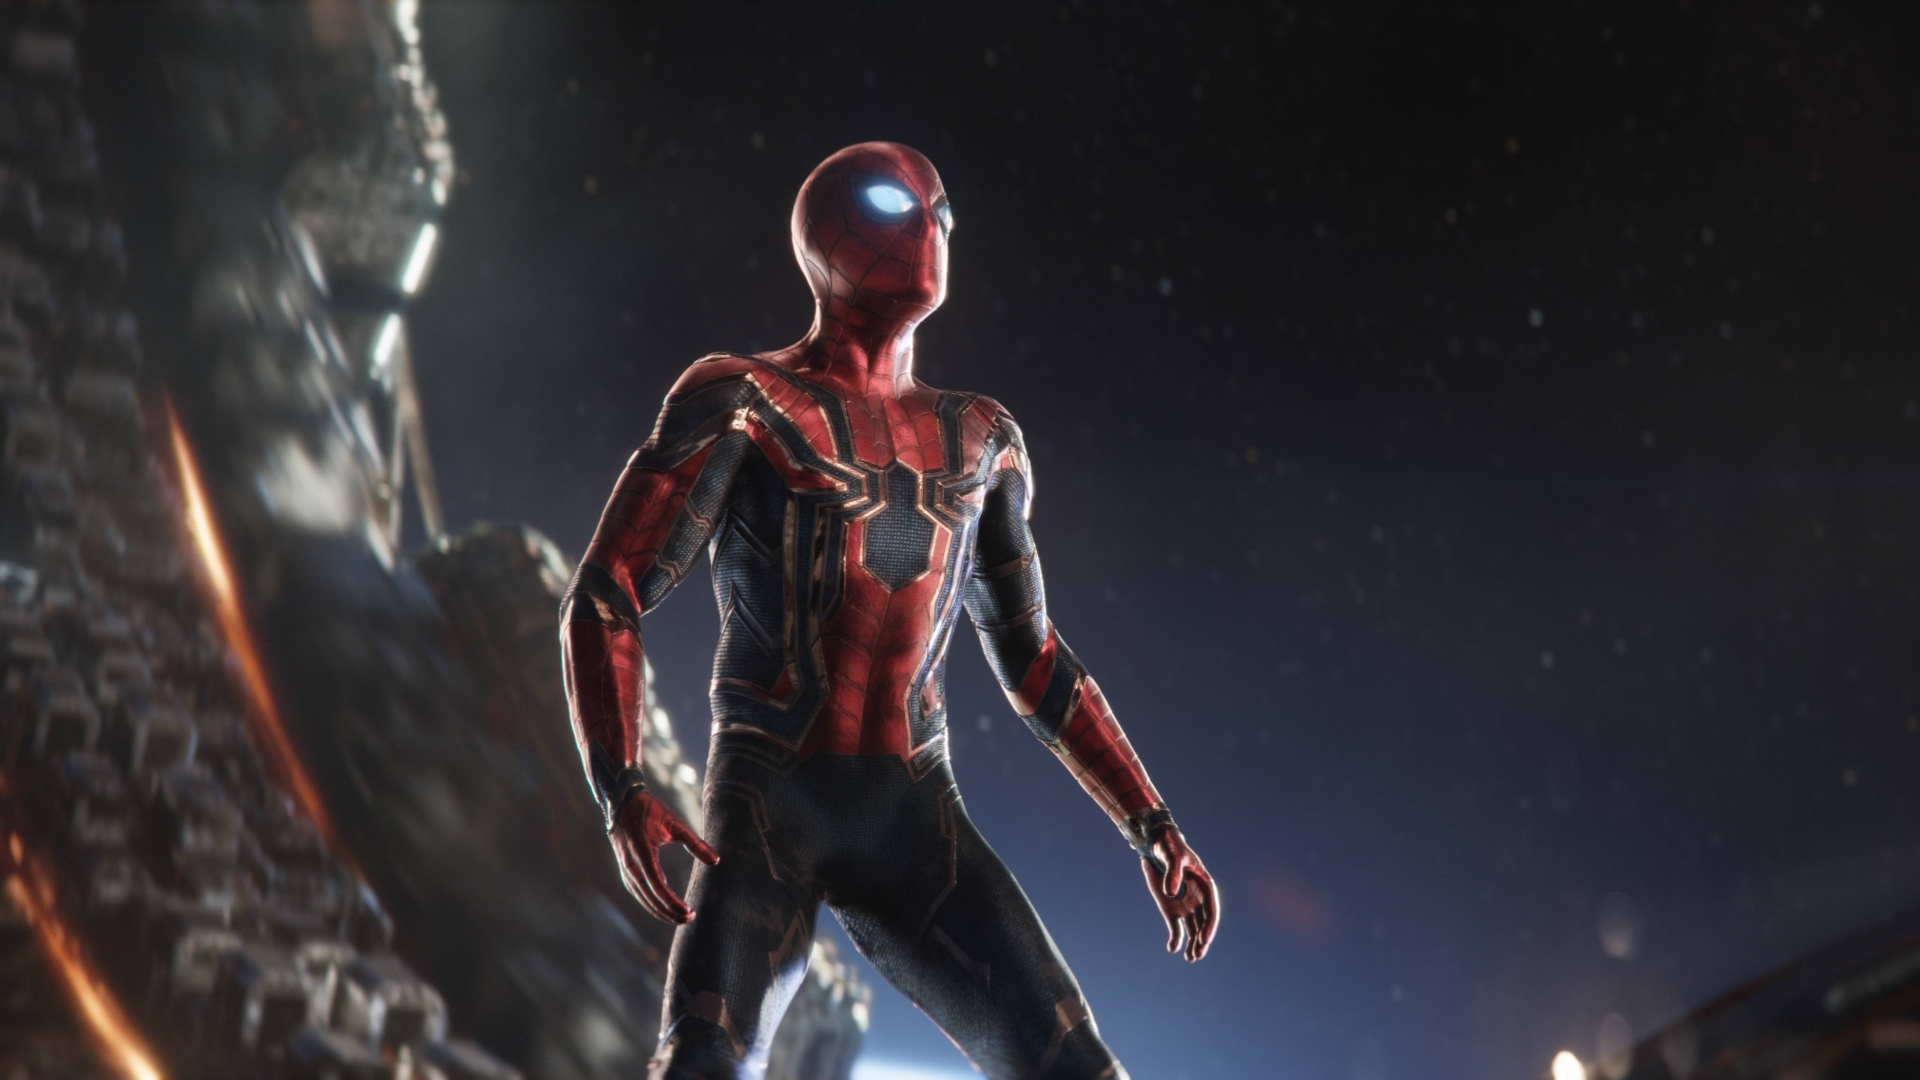 Iron Spider Avengers Infinity War Hd Wallpaper Hintergrund